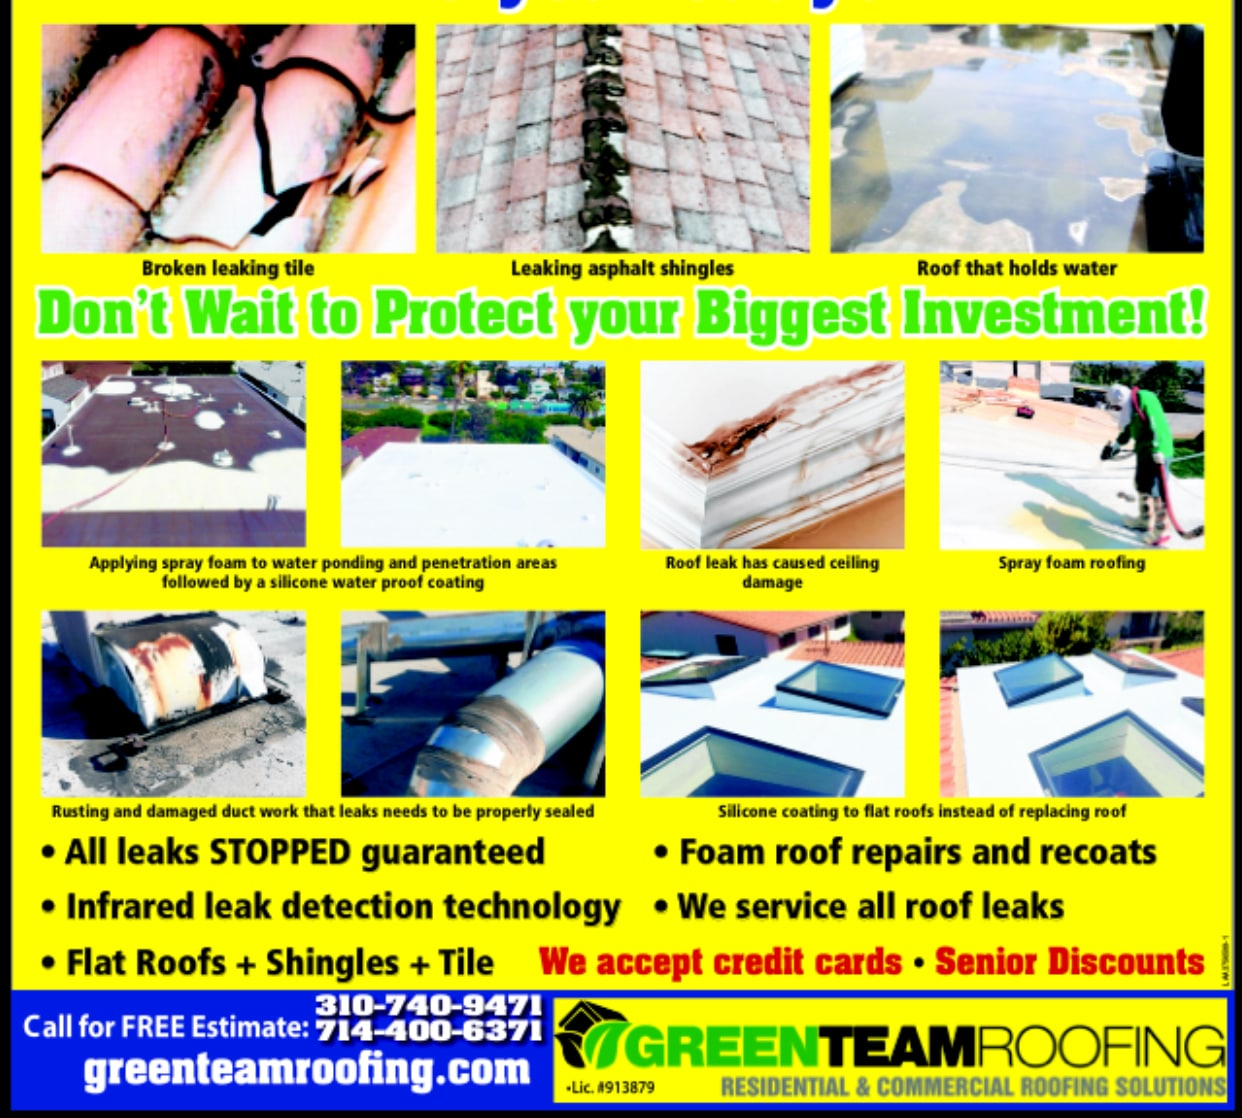 Greenteam Roofing & Insulation